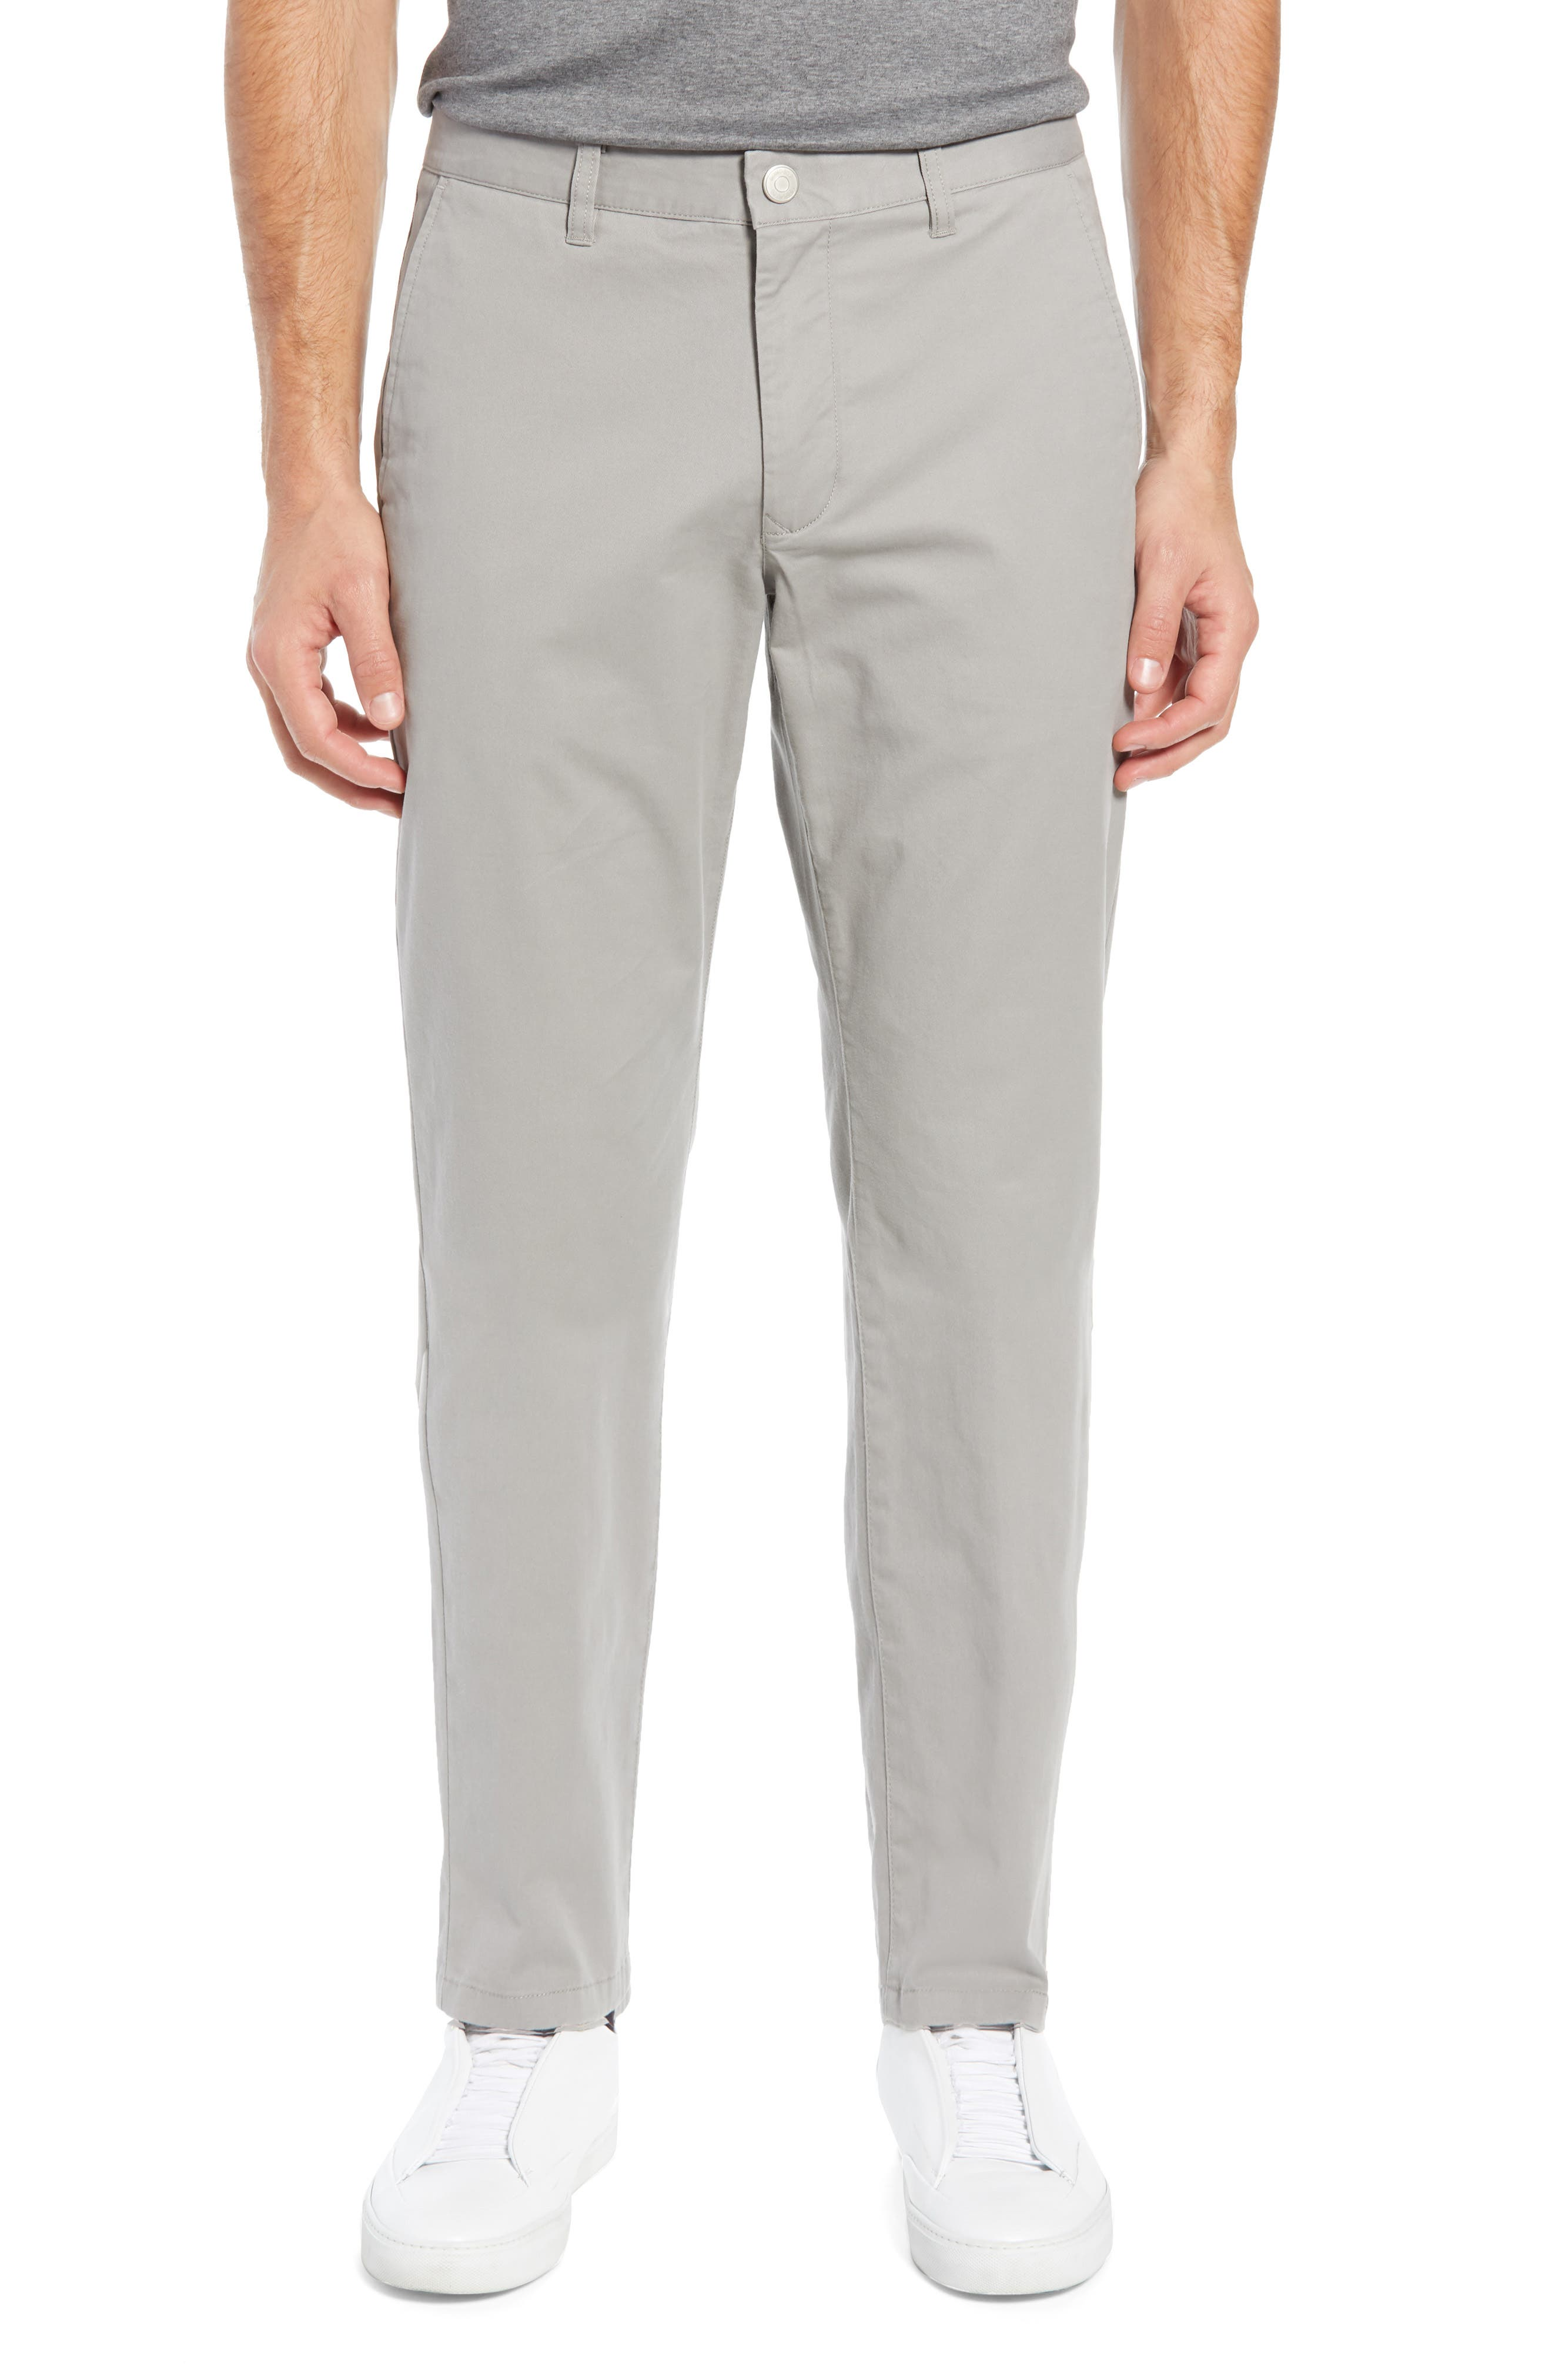 BONOBOS Athletic Fit Stretch Washed Chinos, Main, color, GREY DOGS